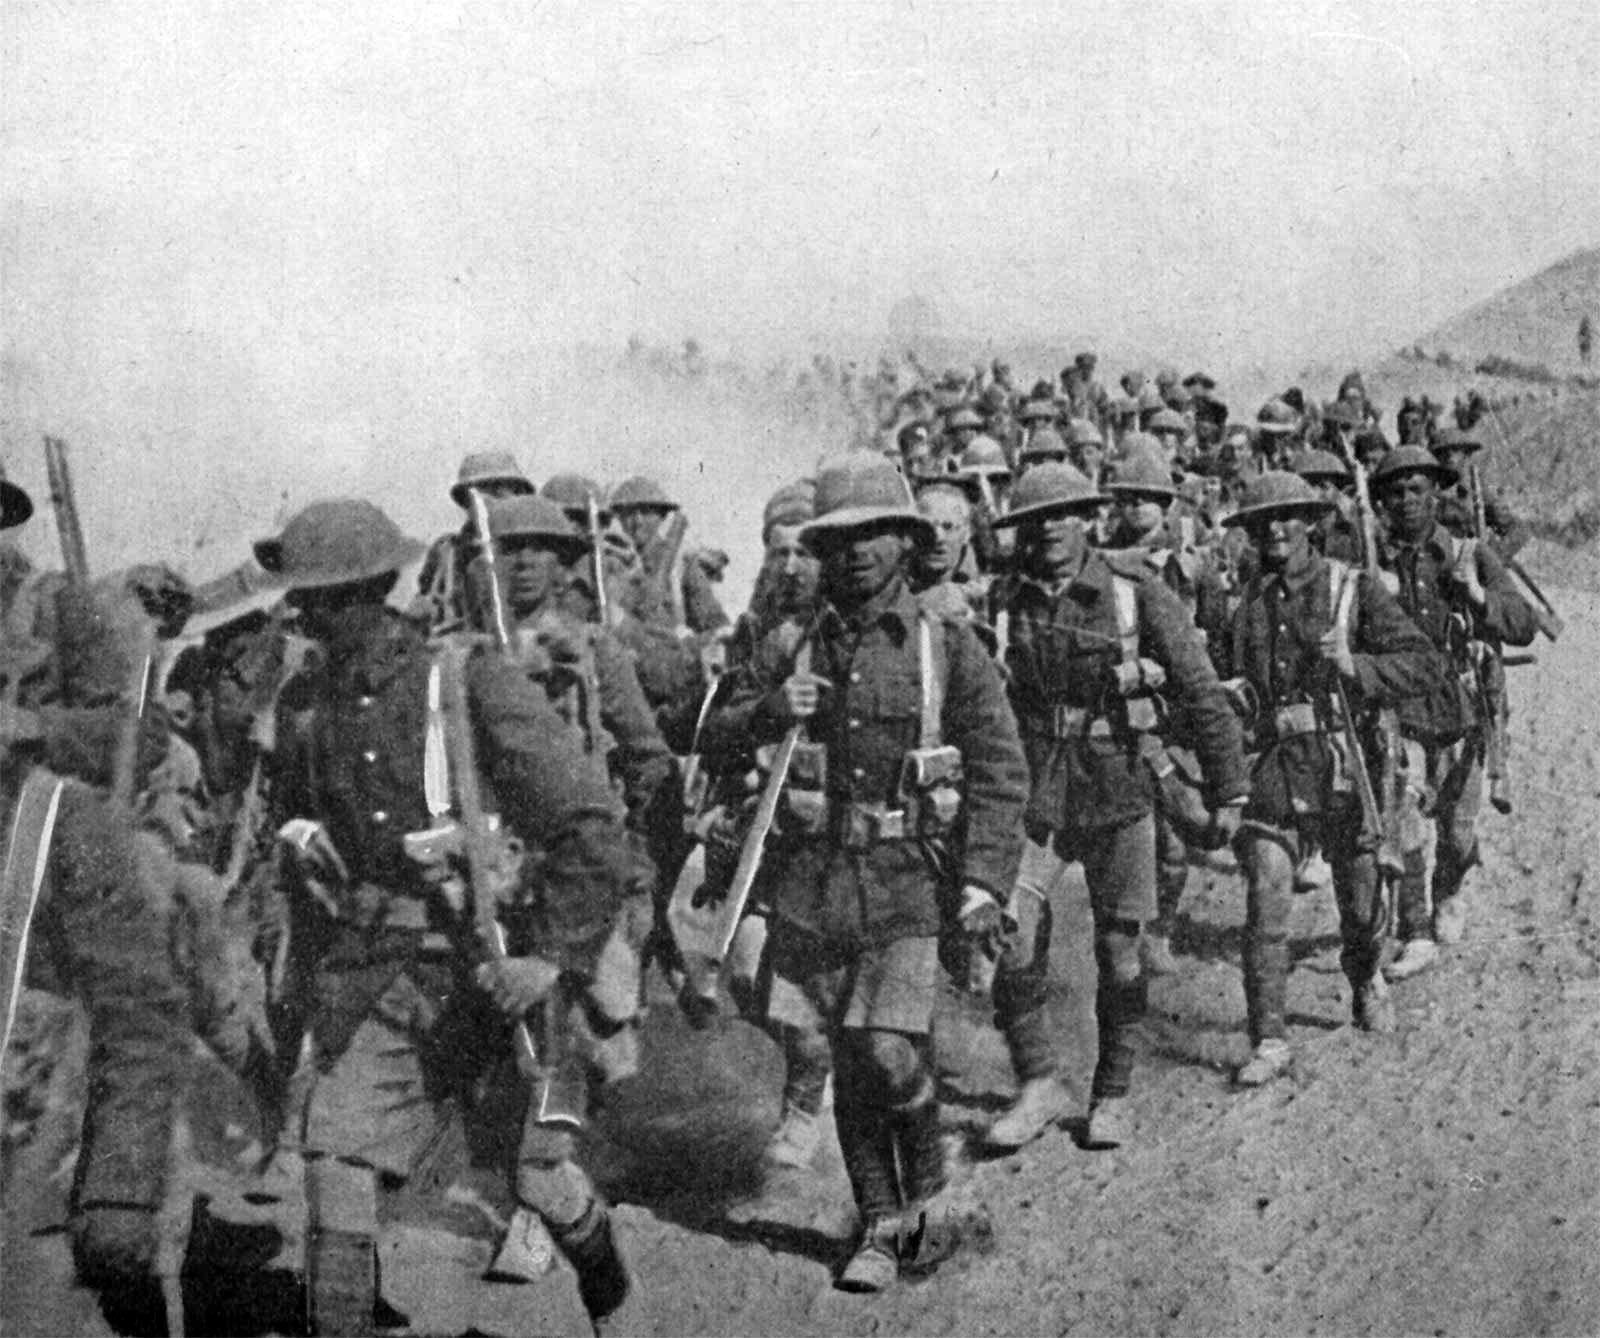 british-troops-on-the-march-during-mesopotamian-campaign-world-war-i.jpg